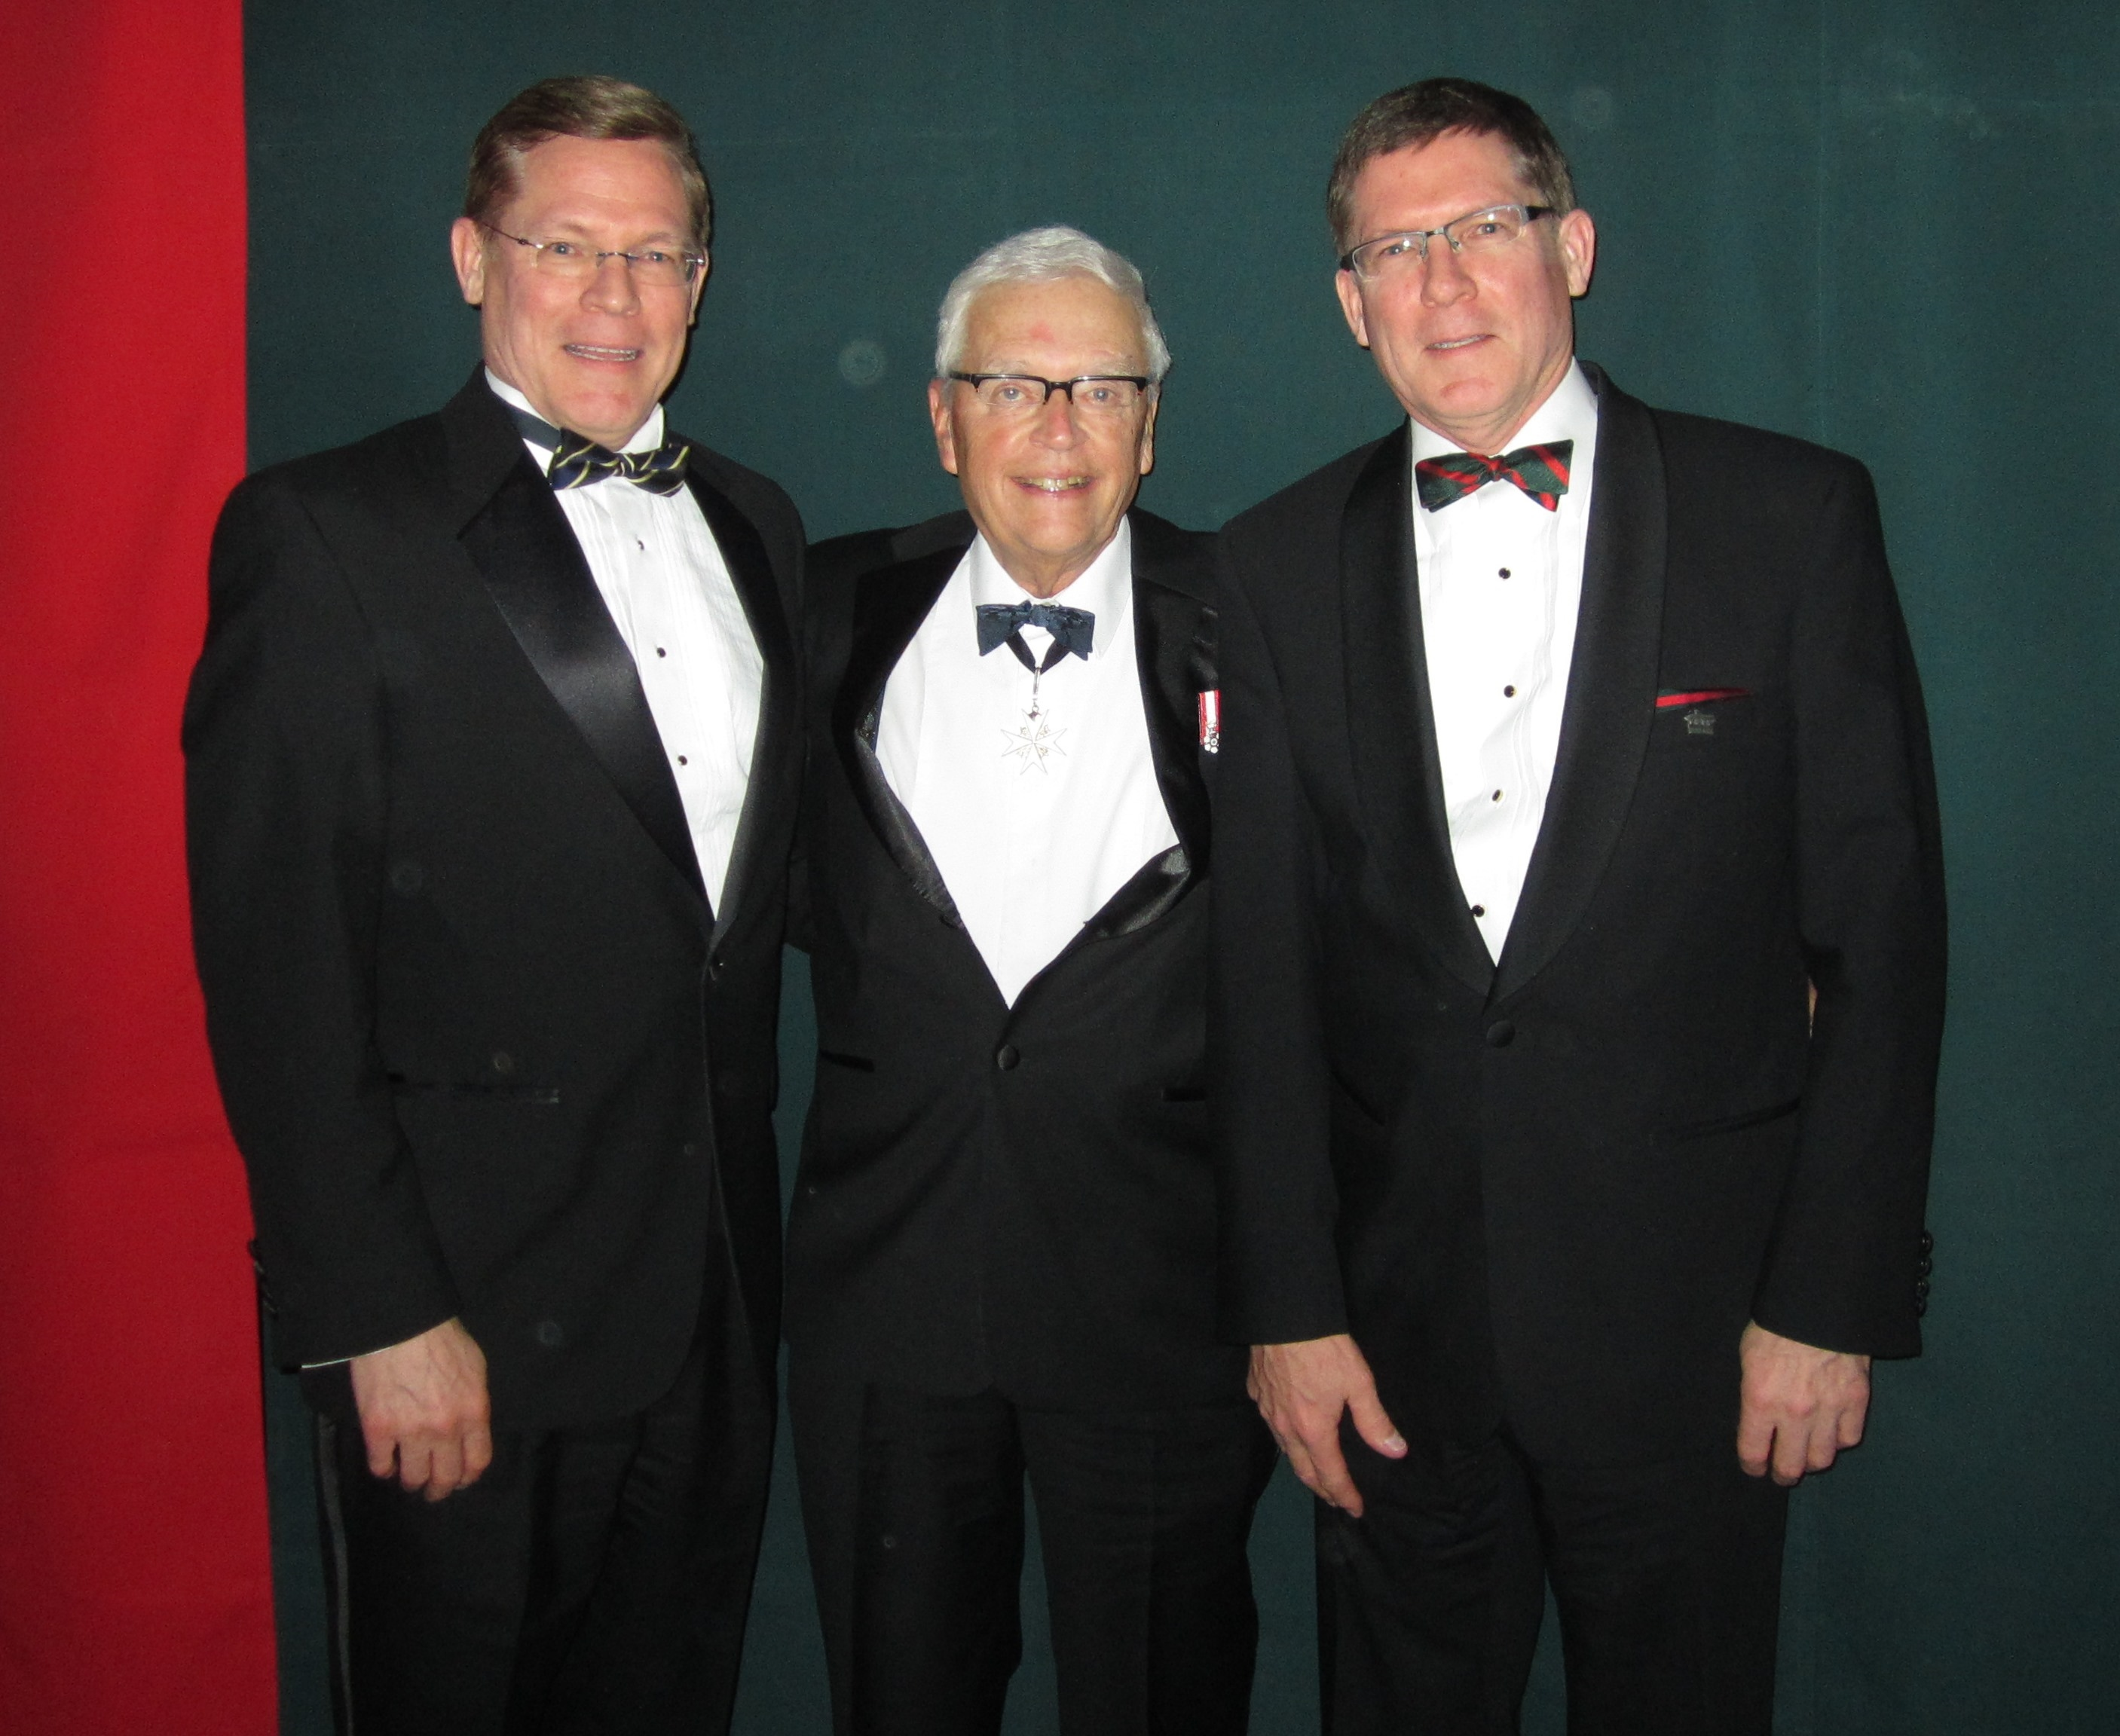 11_Brock Rif Mess Dinner 2013 (5)